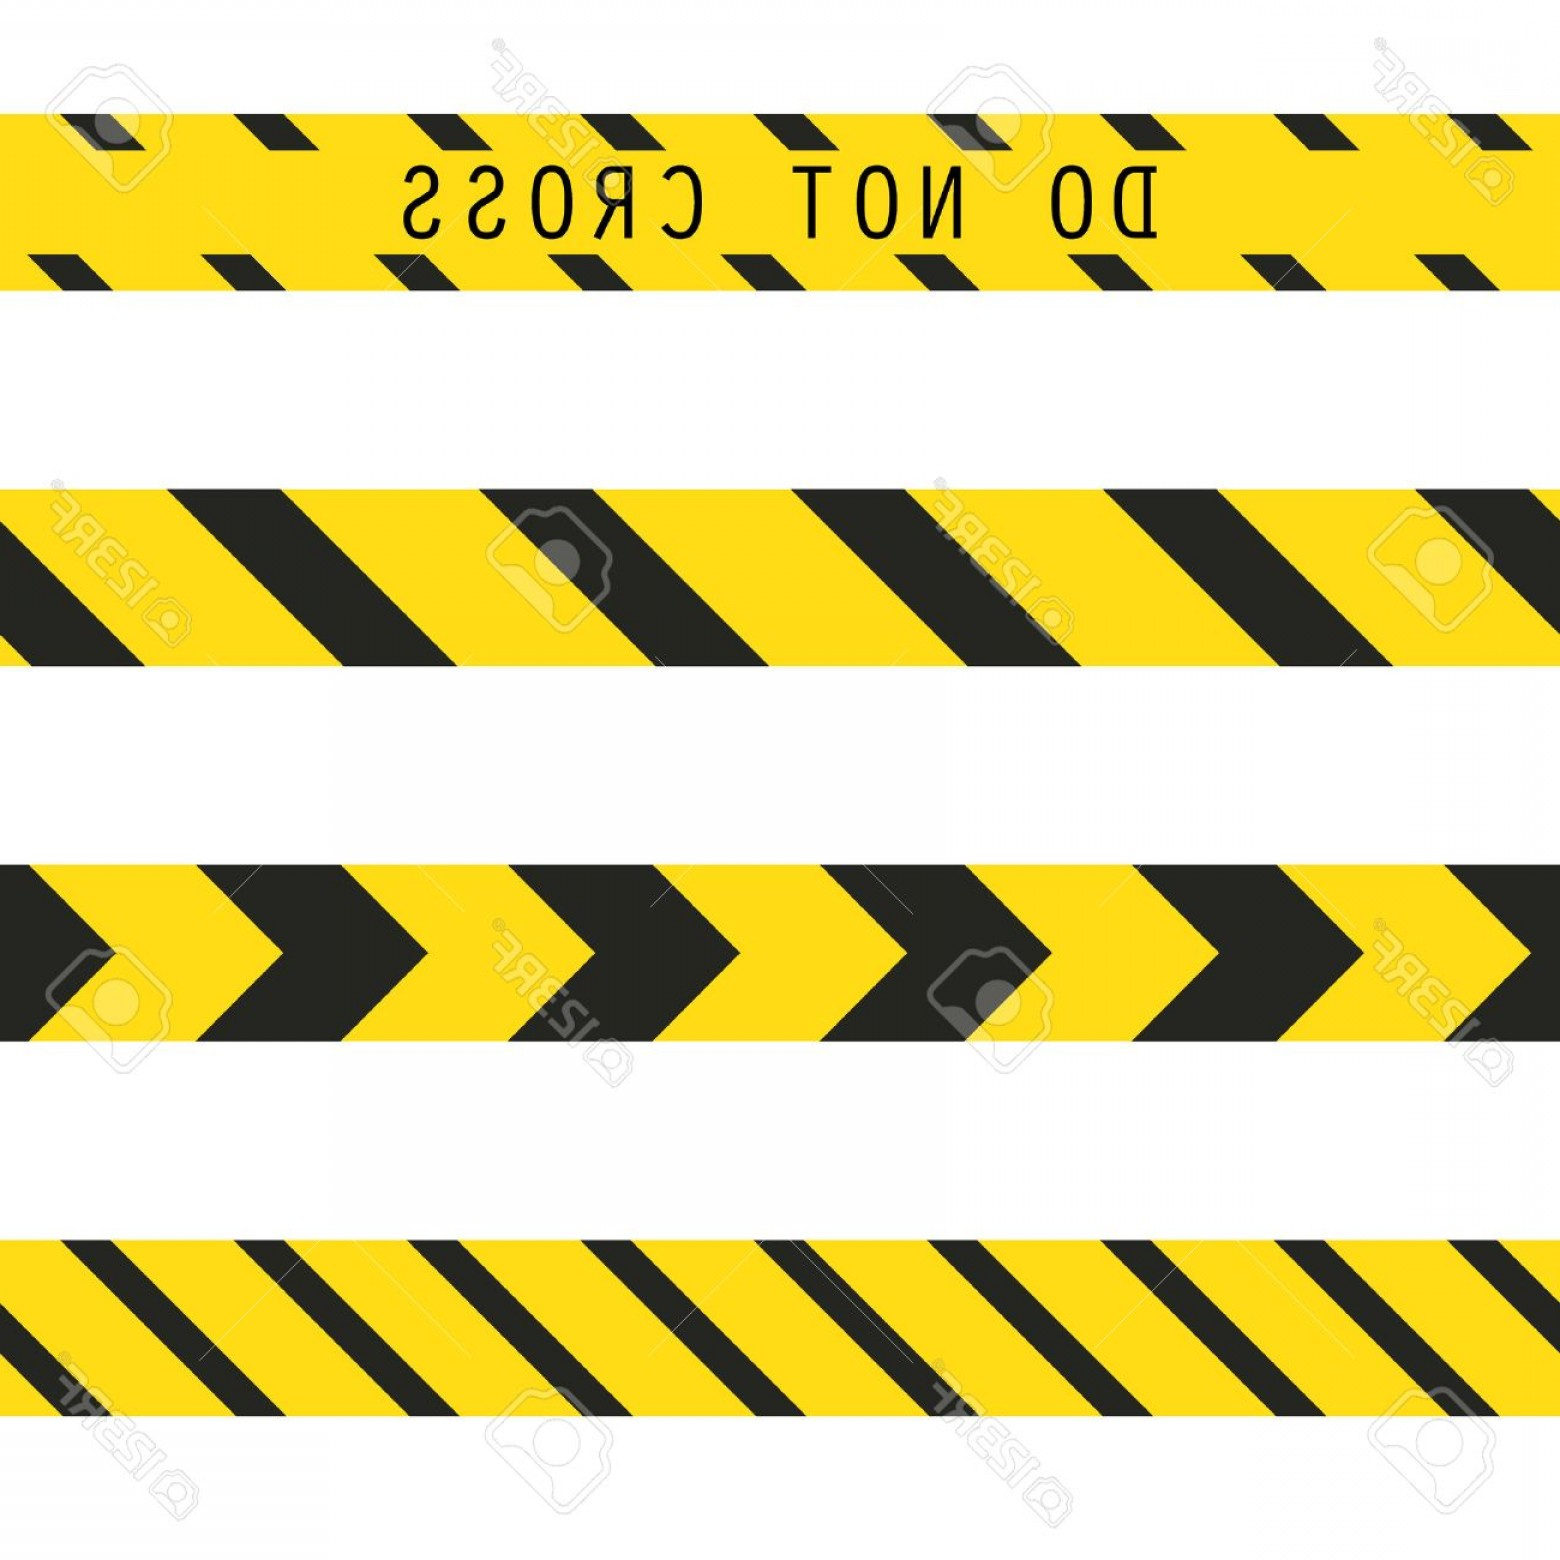 Caution Stripes Vector: Photostock Vector Do Not Cross The Line Caution Vector Tape Seamless Police Warning Tape Set Prohibiting Yellow Lines